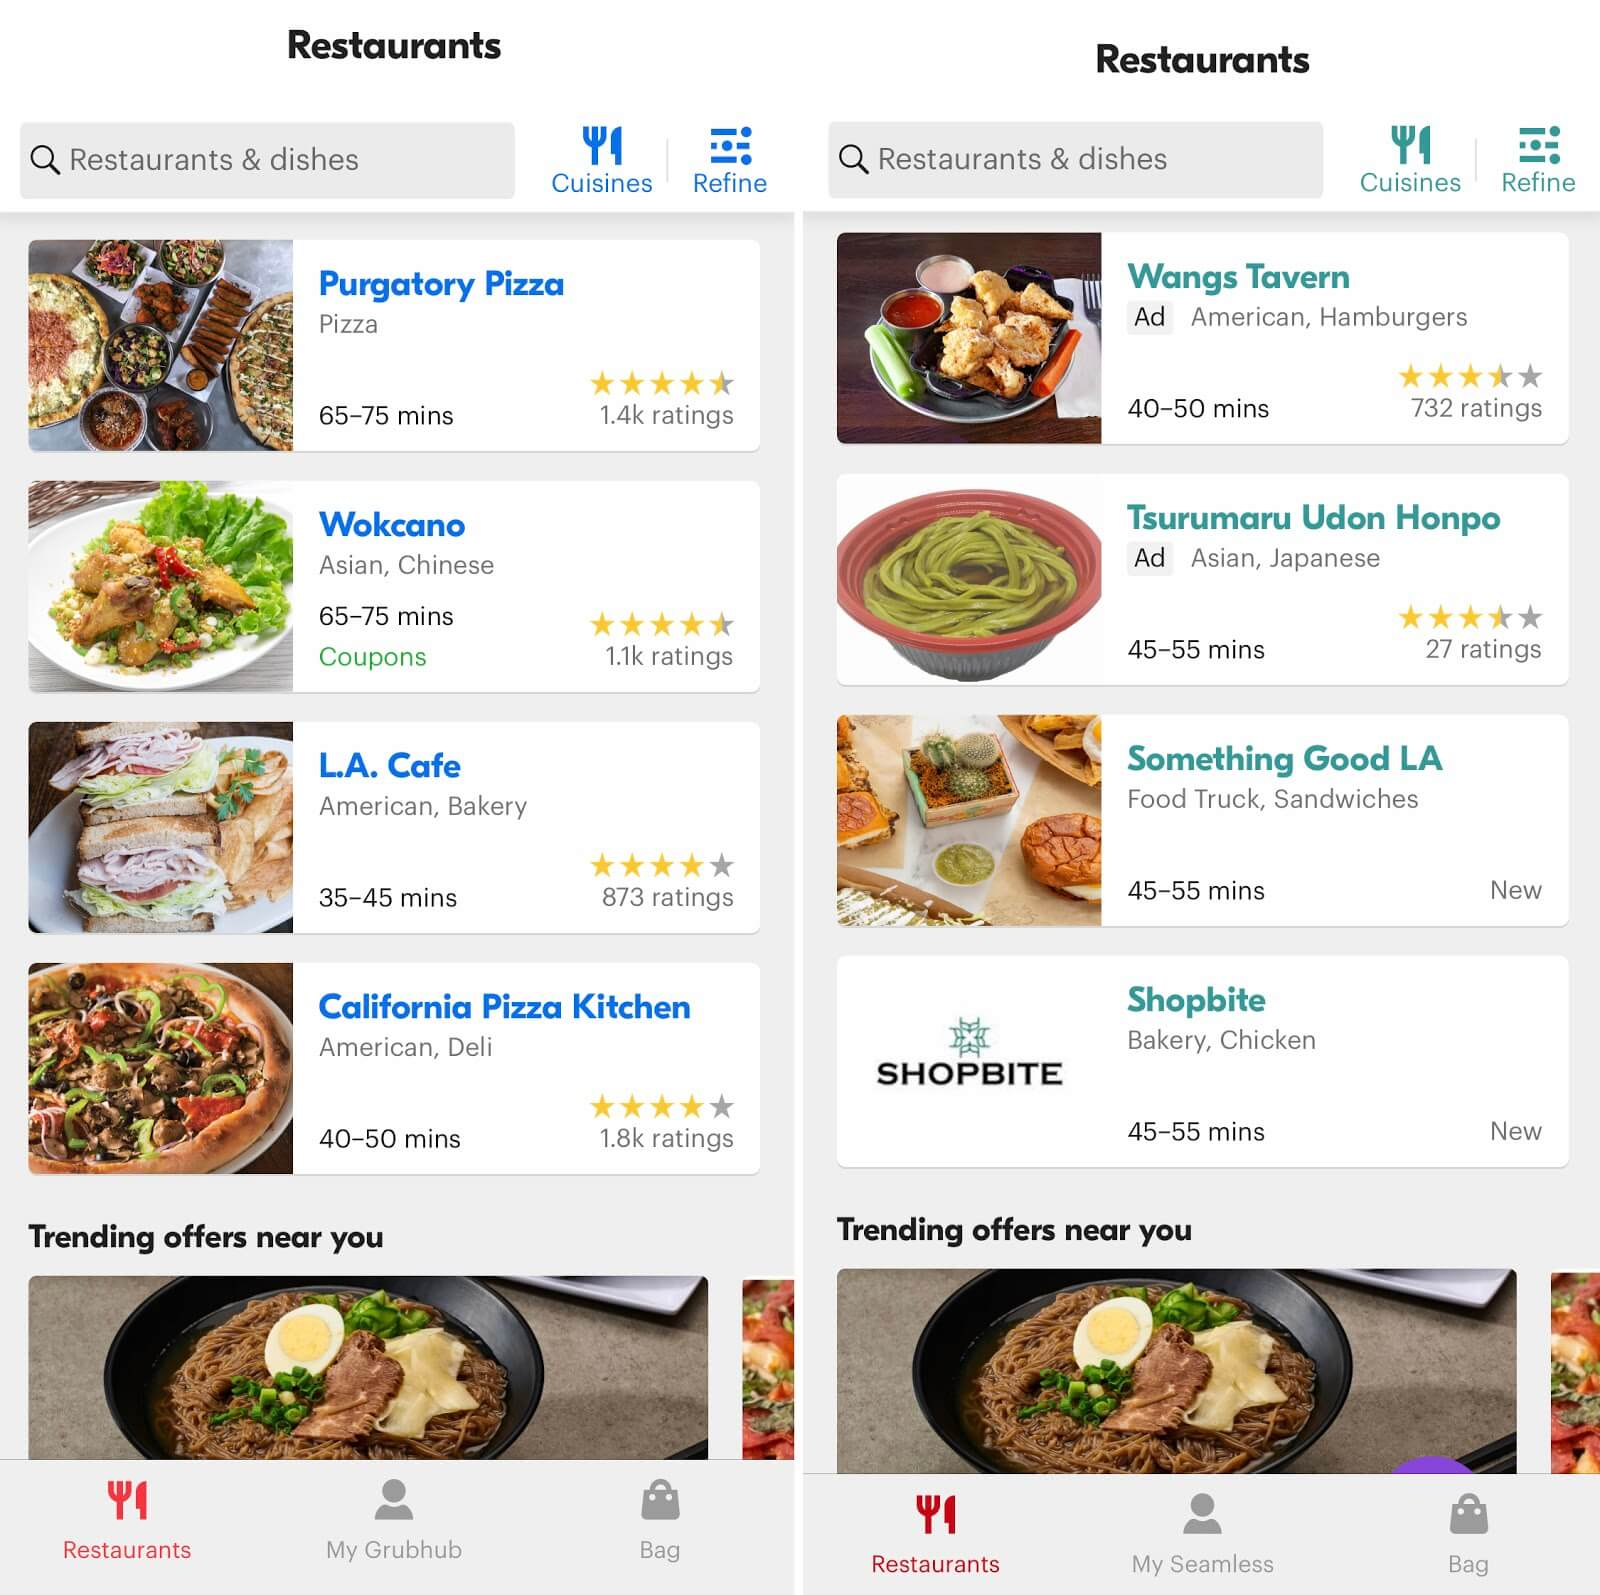 Seamless Grubhub: Comparison of the app interfaces